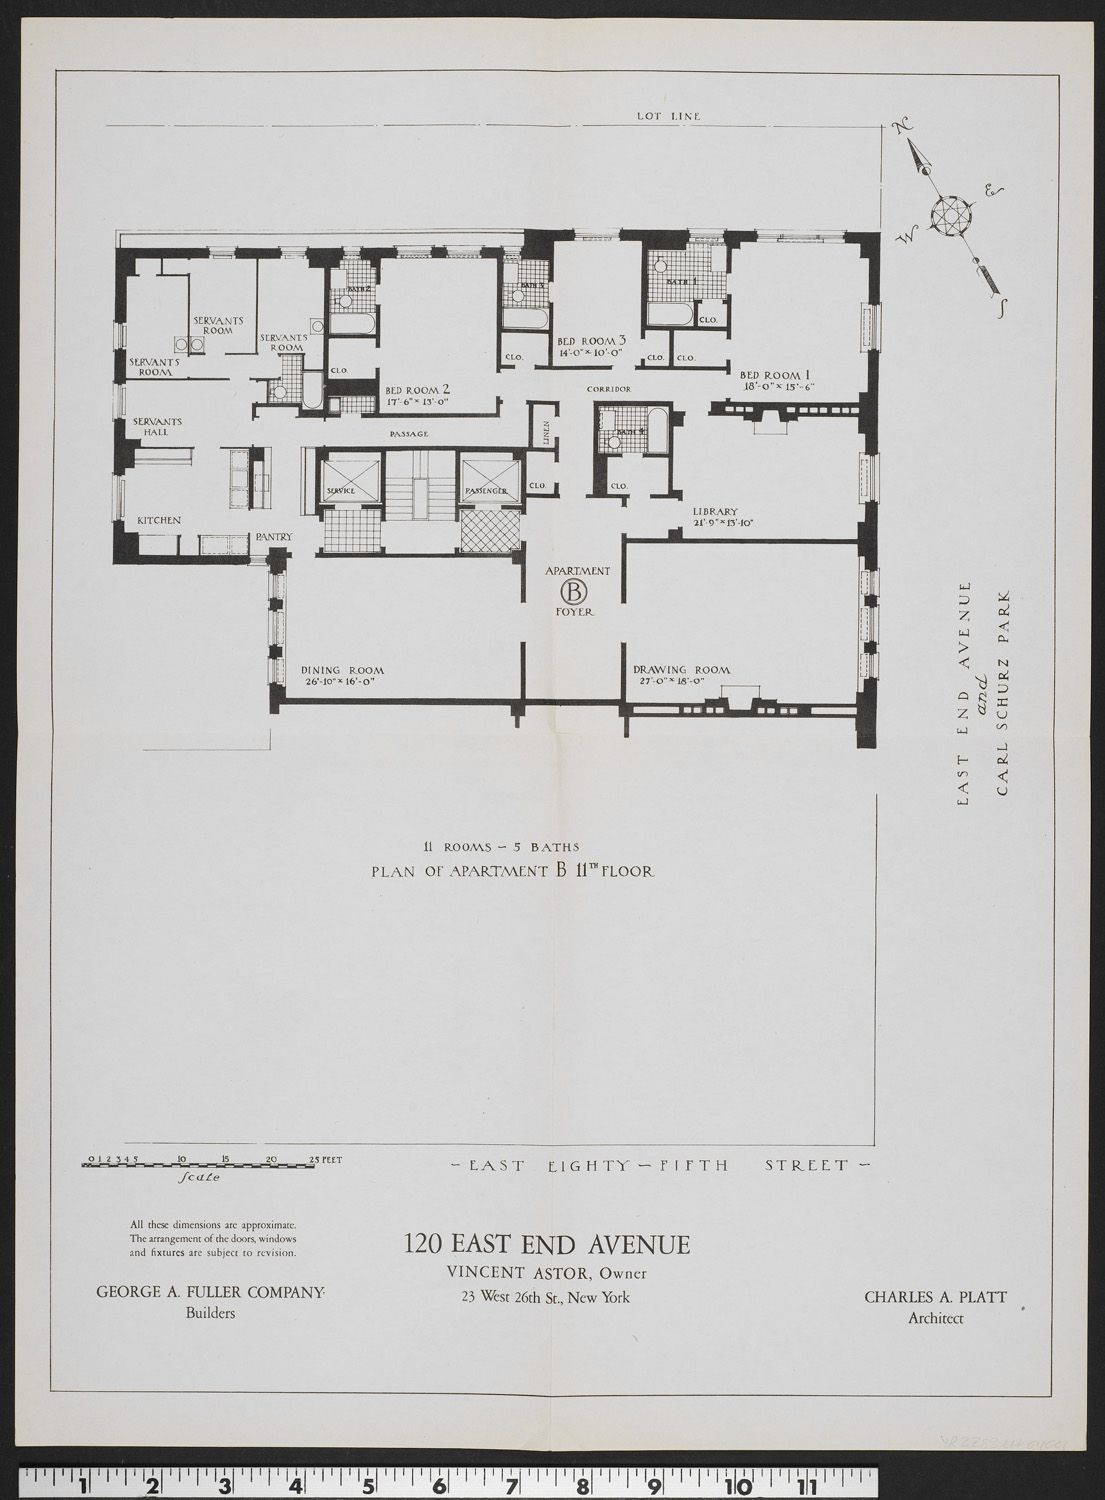 New York Real Estate Brochures Collection Projects How To Plan Apartment Floor Plans Floor Plans